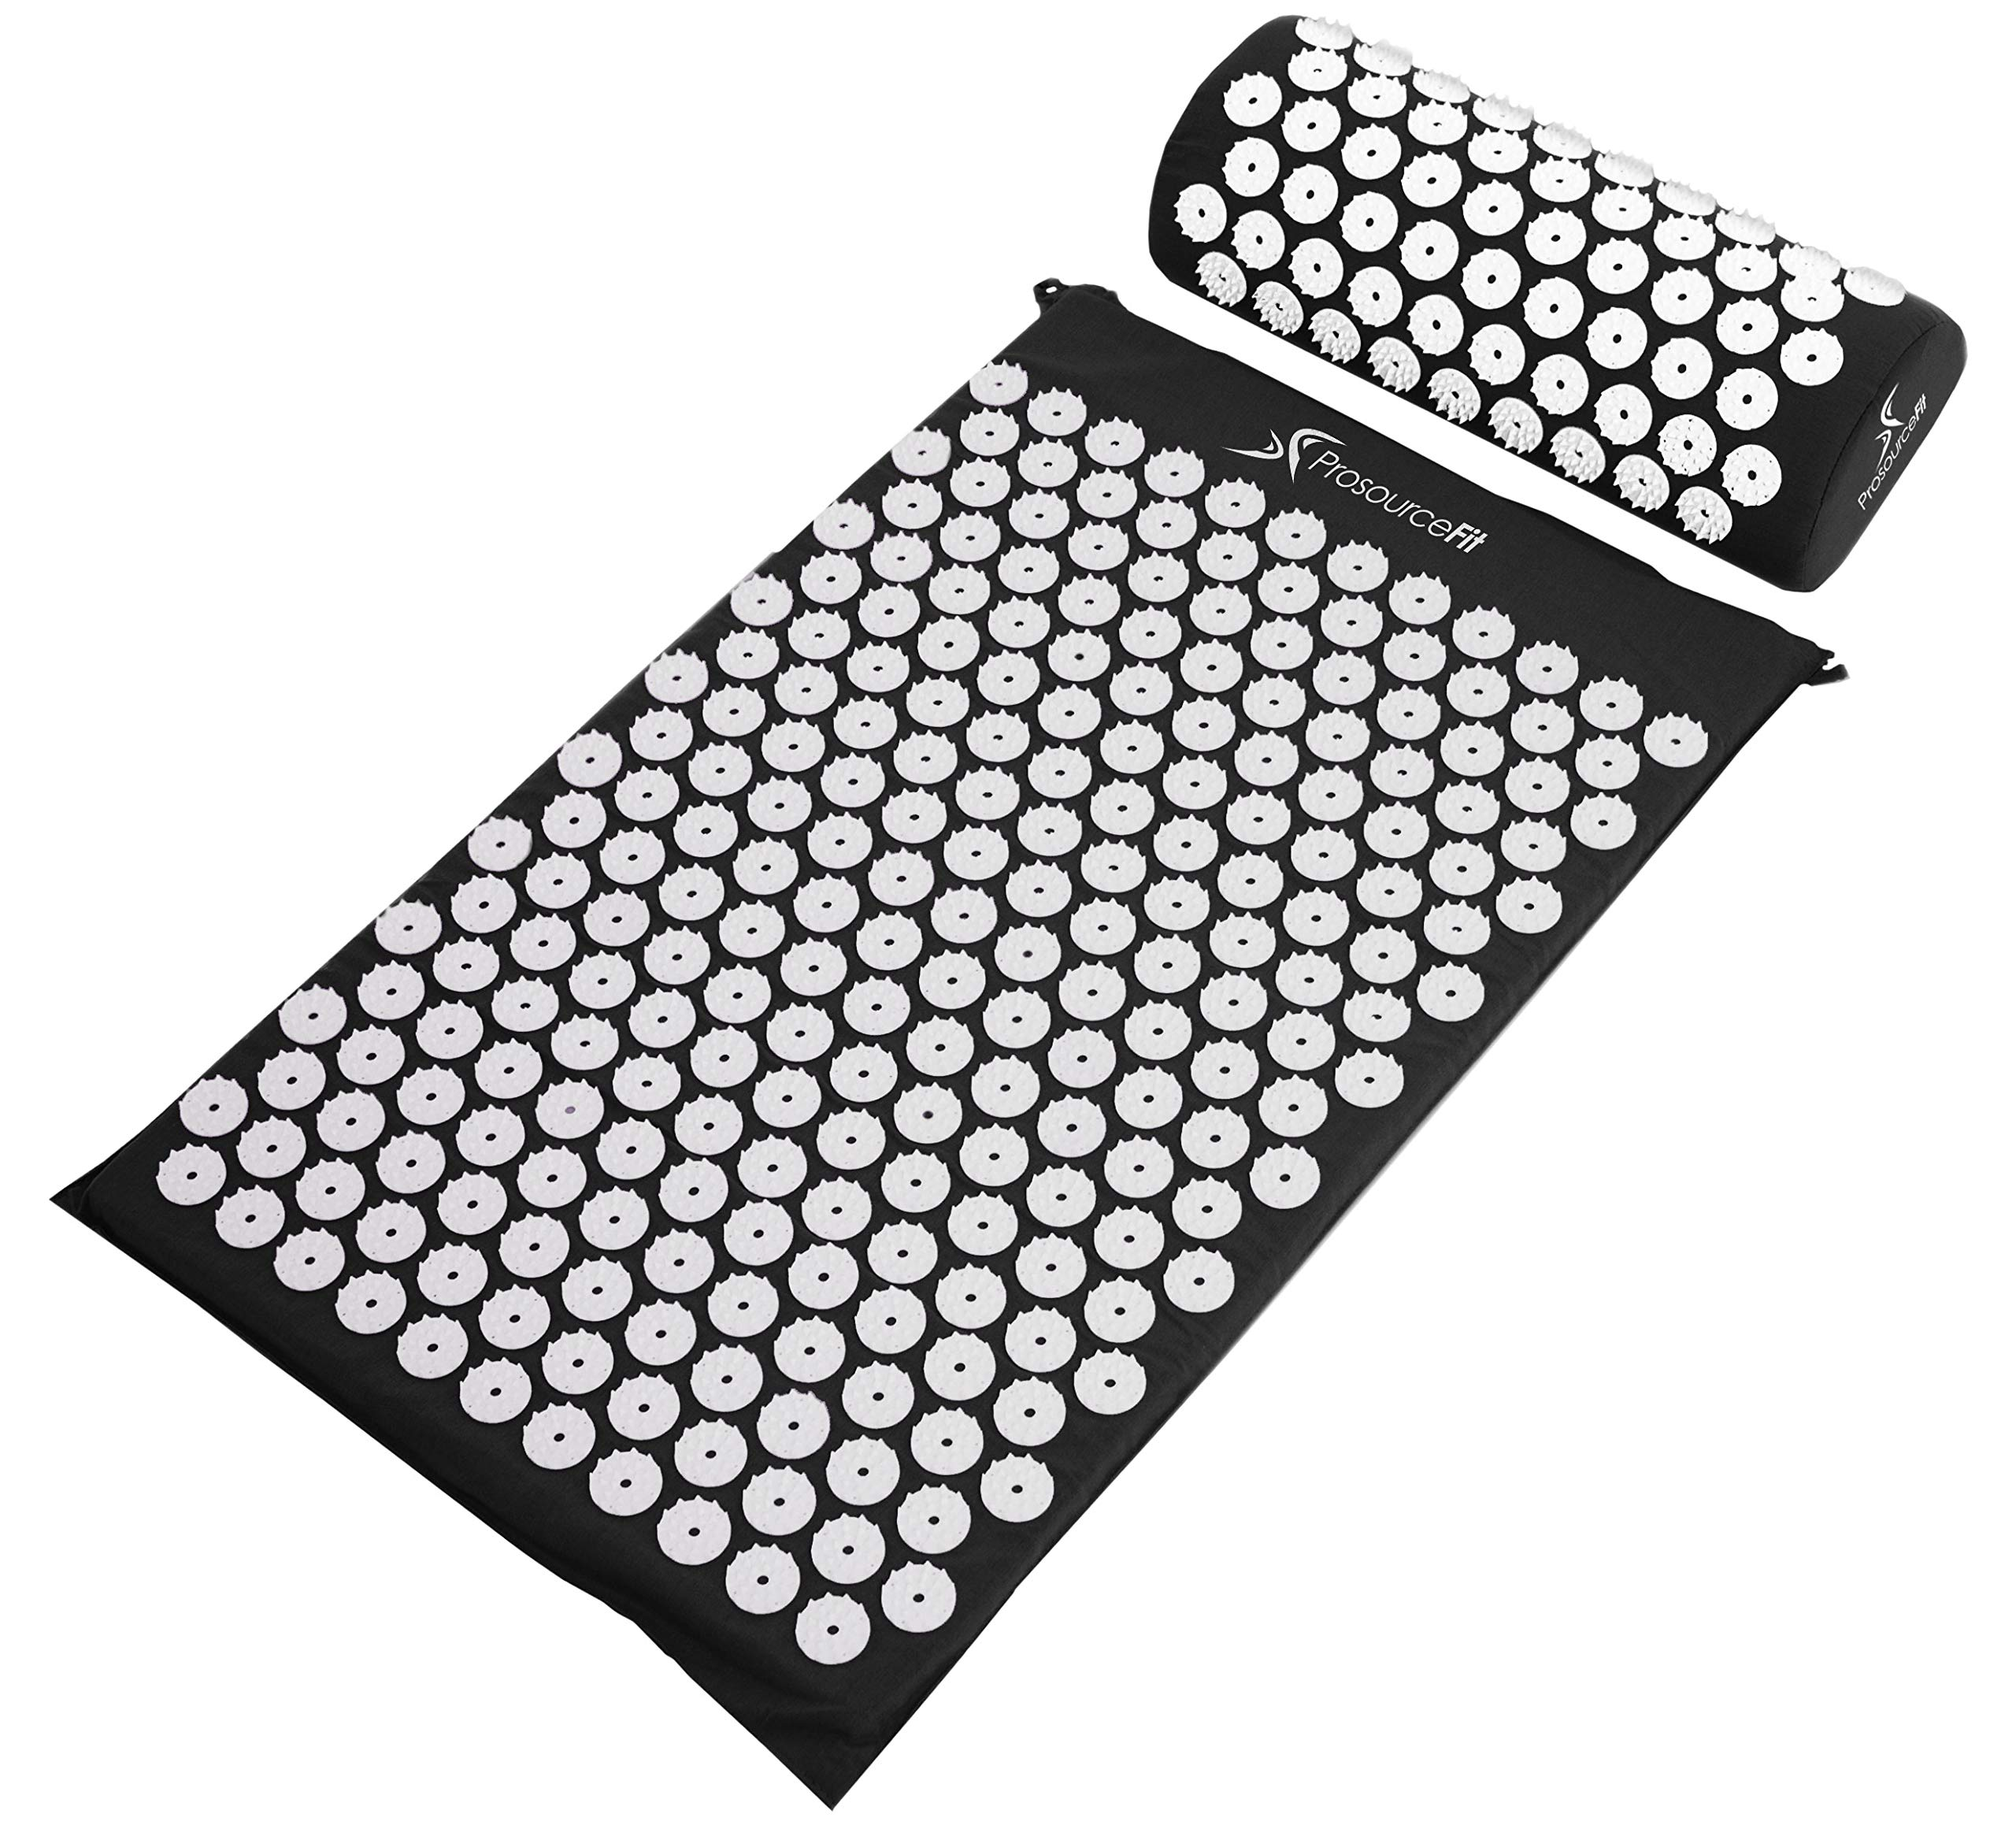 ProSource Acupressure Mat and Pillow Set for Back/Neck Pain Relief and Muscle Relaxation, Black by ProSource (Image #1)